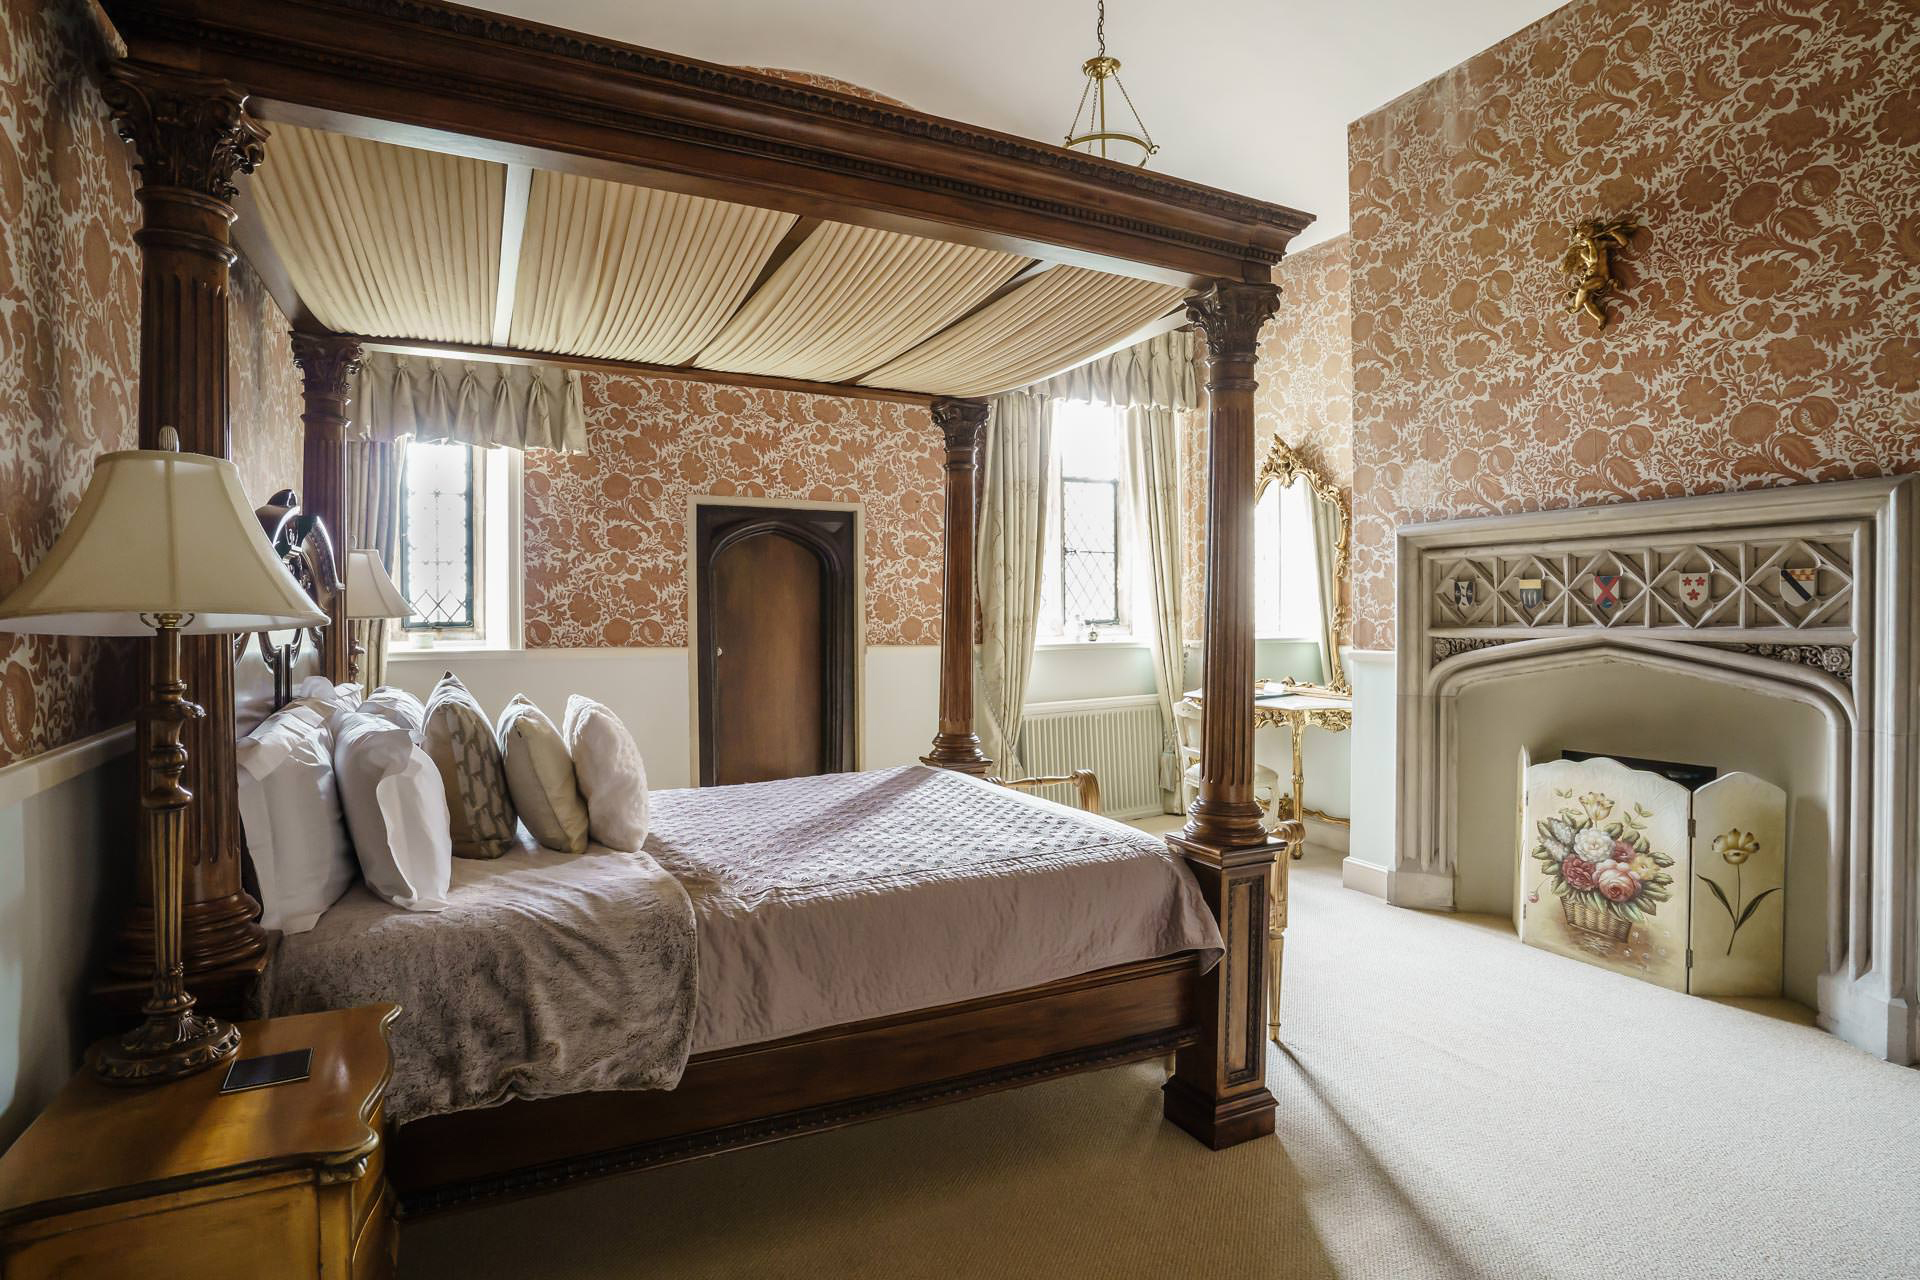 Four Poster Bed and Bedroom at Hengrave Hall